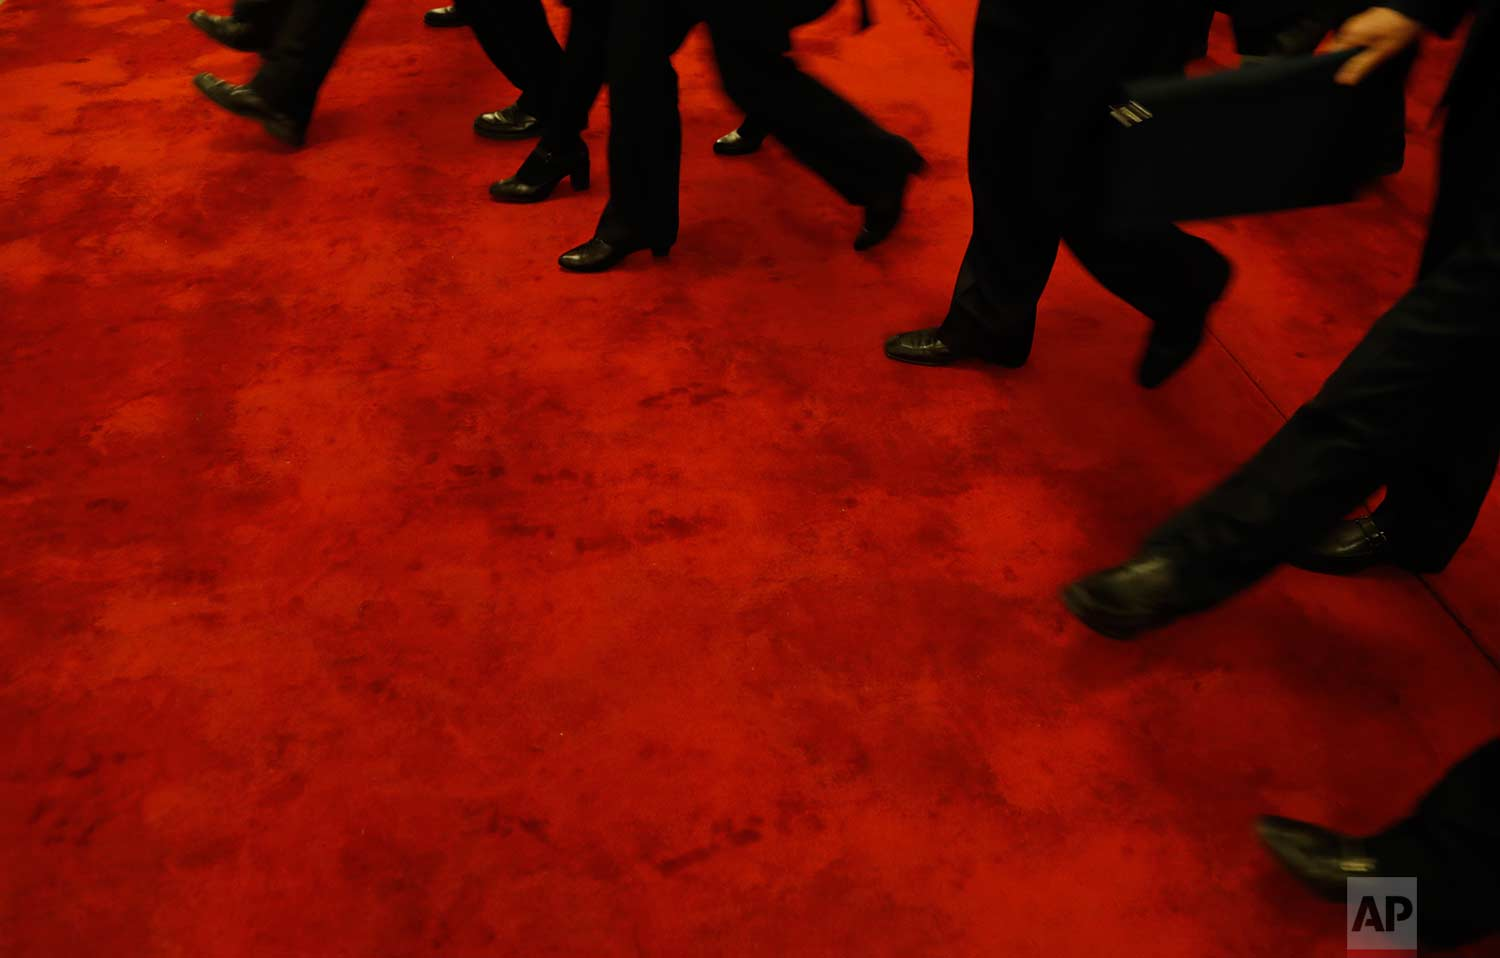 In this Wednesday, March 14, 2018 photo, delegates walk on a red carpet as they leave after attending a plenary session of Chinese People's Political Consultative Conference (CPPCC) at the Great Hall of the People in Beijing. (AP Photo/Aijaz Rahi)